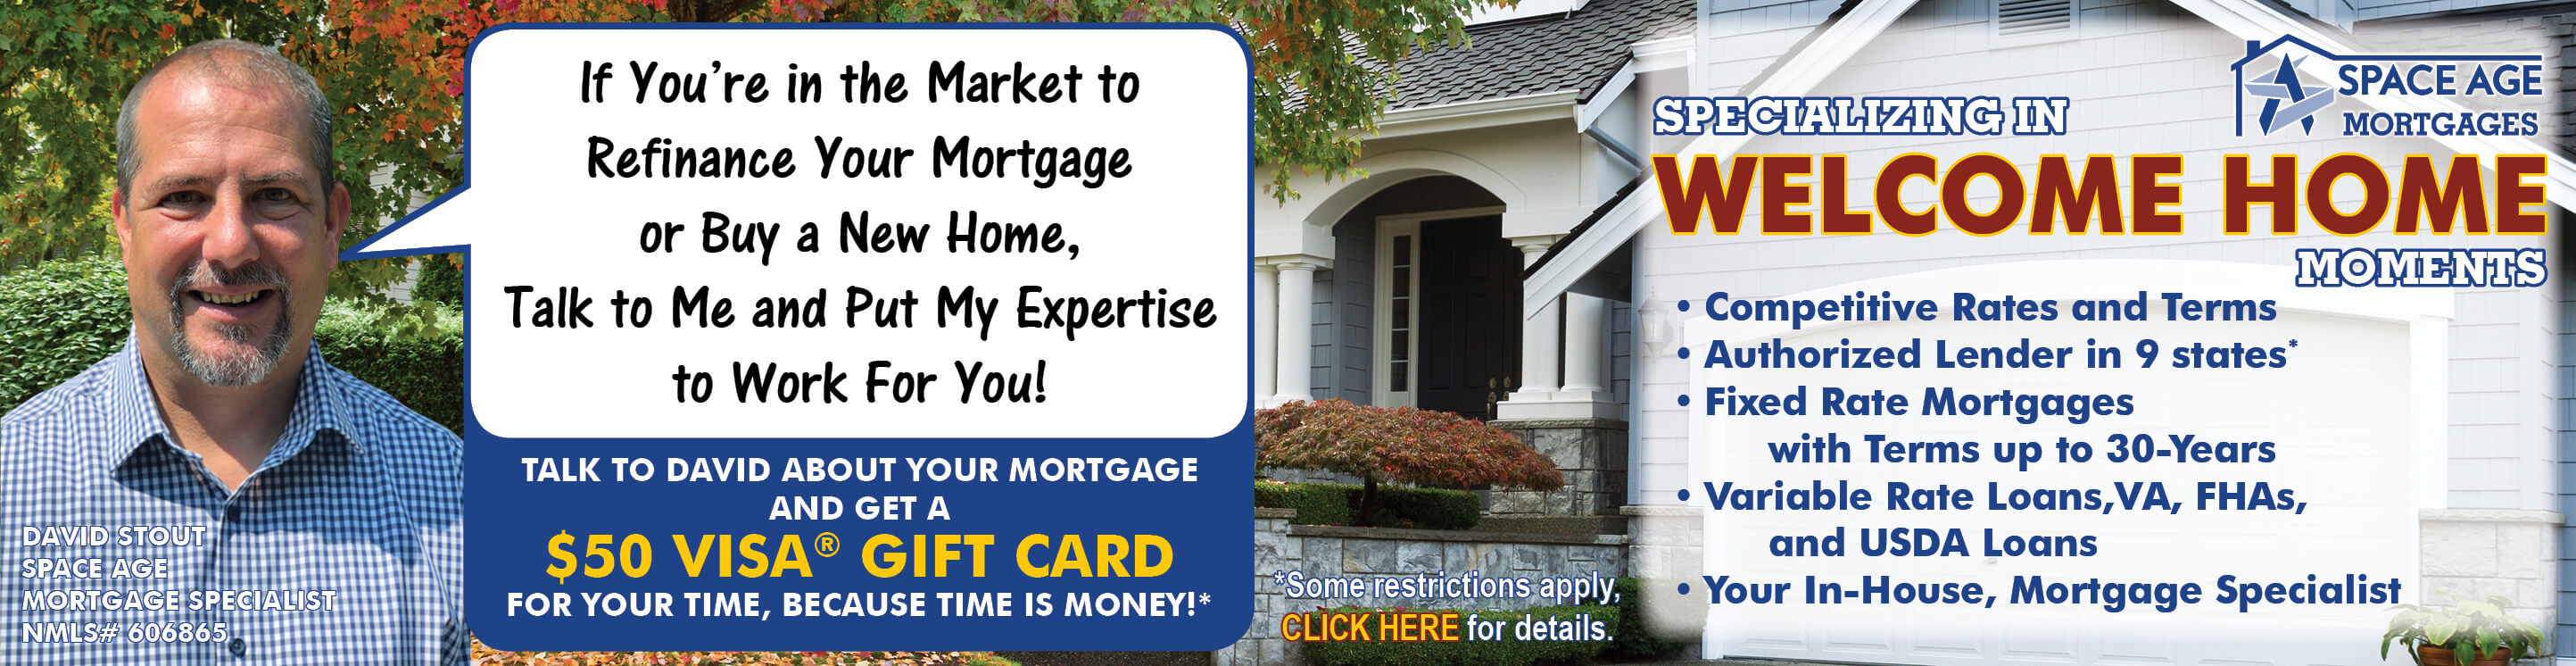 Blue House with fall colored leaves on the ground. Picture of David Stout, Mortgage Specialist on the right. Text reads Specializing in Welcome Home Moments.